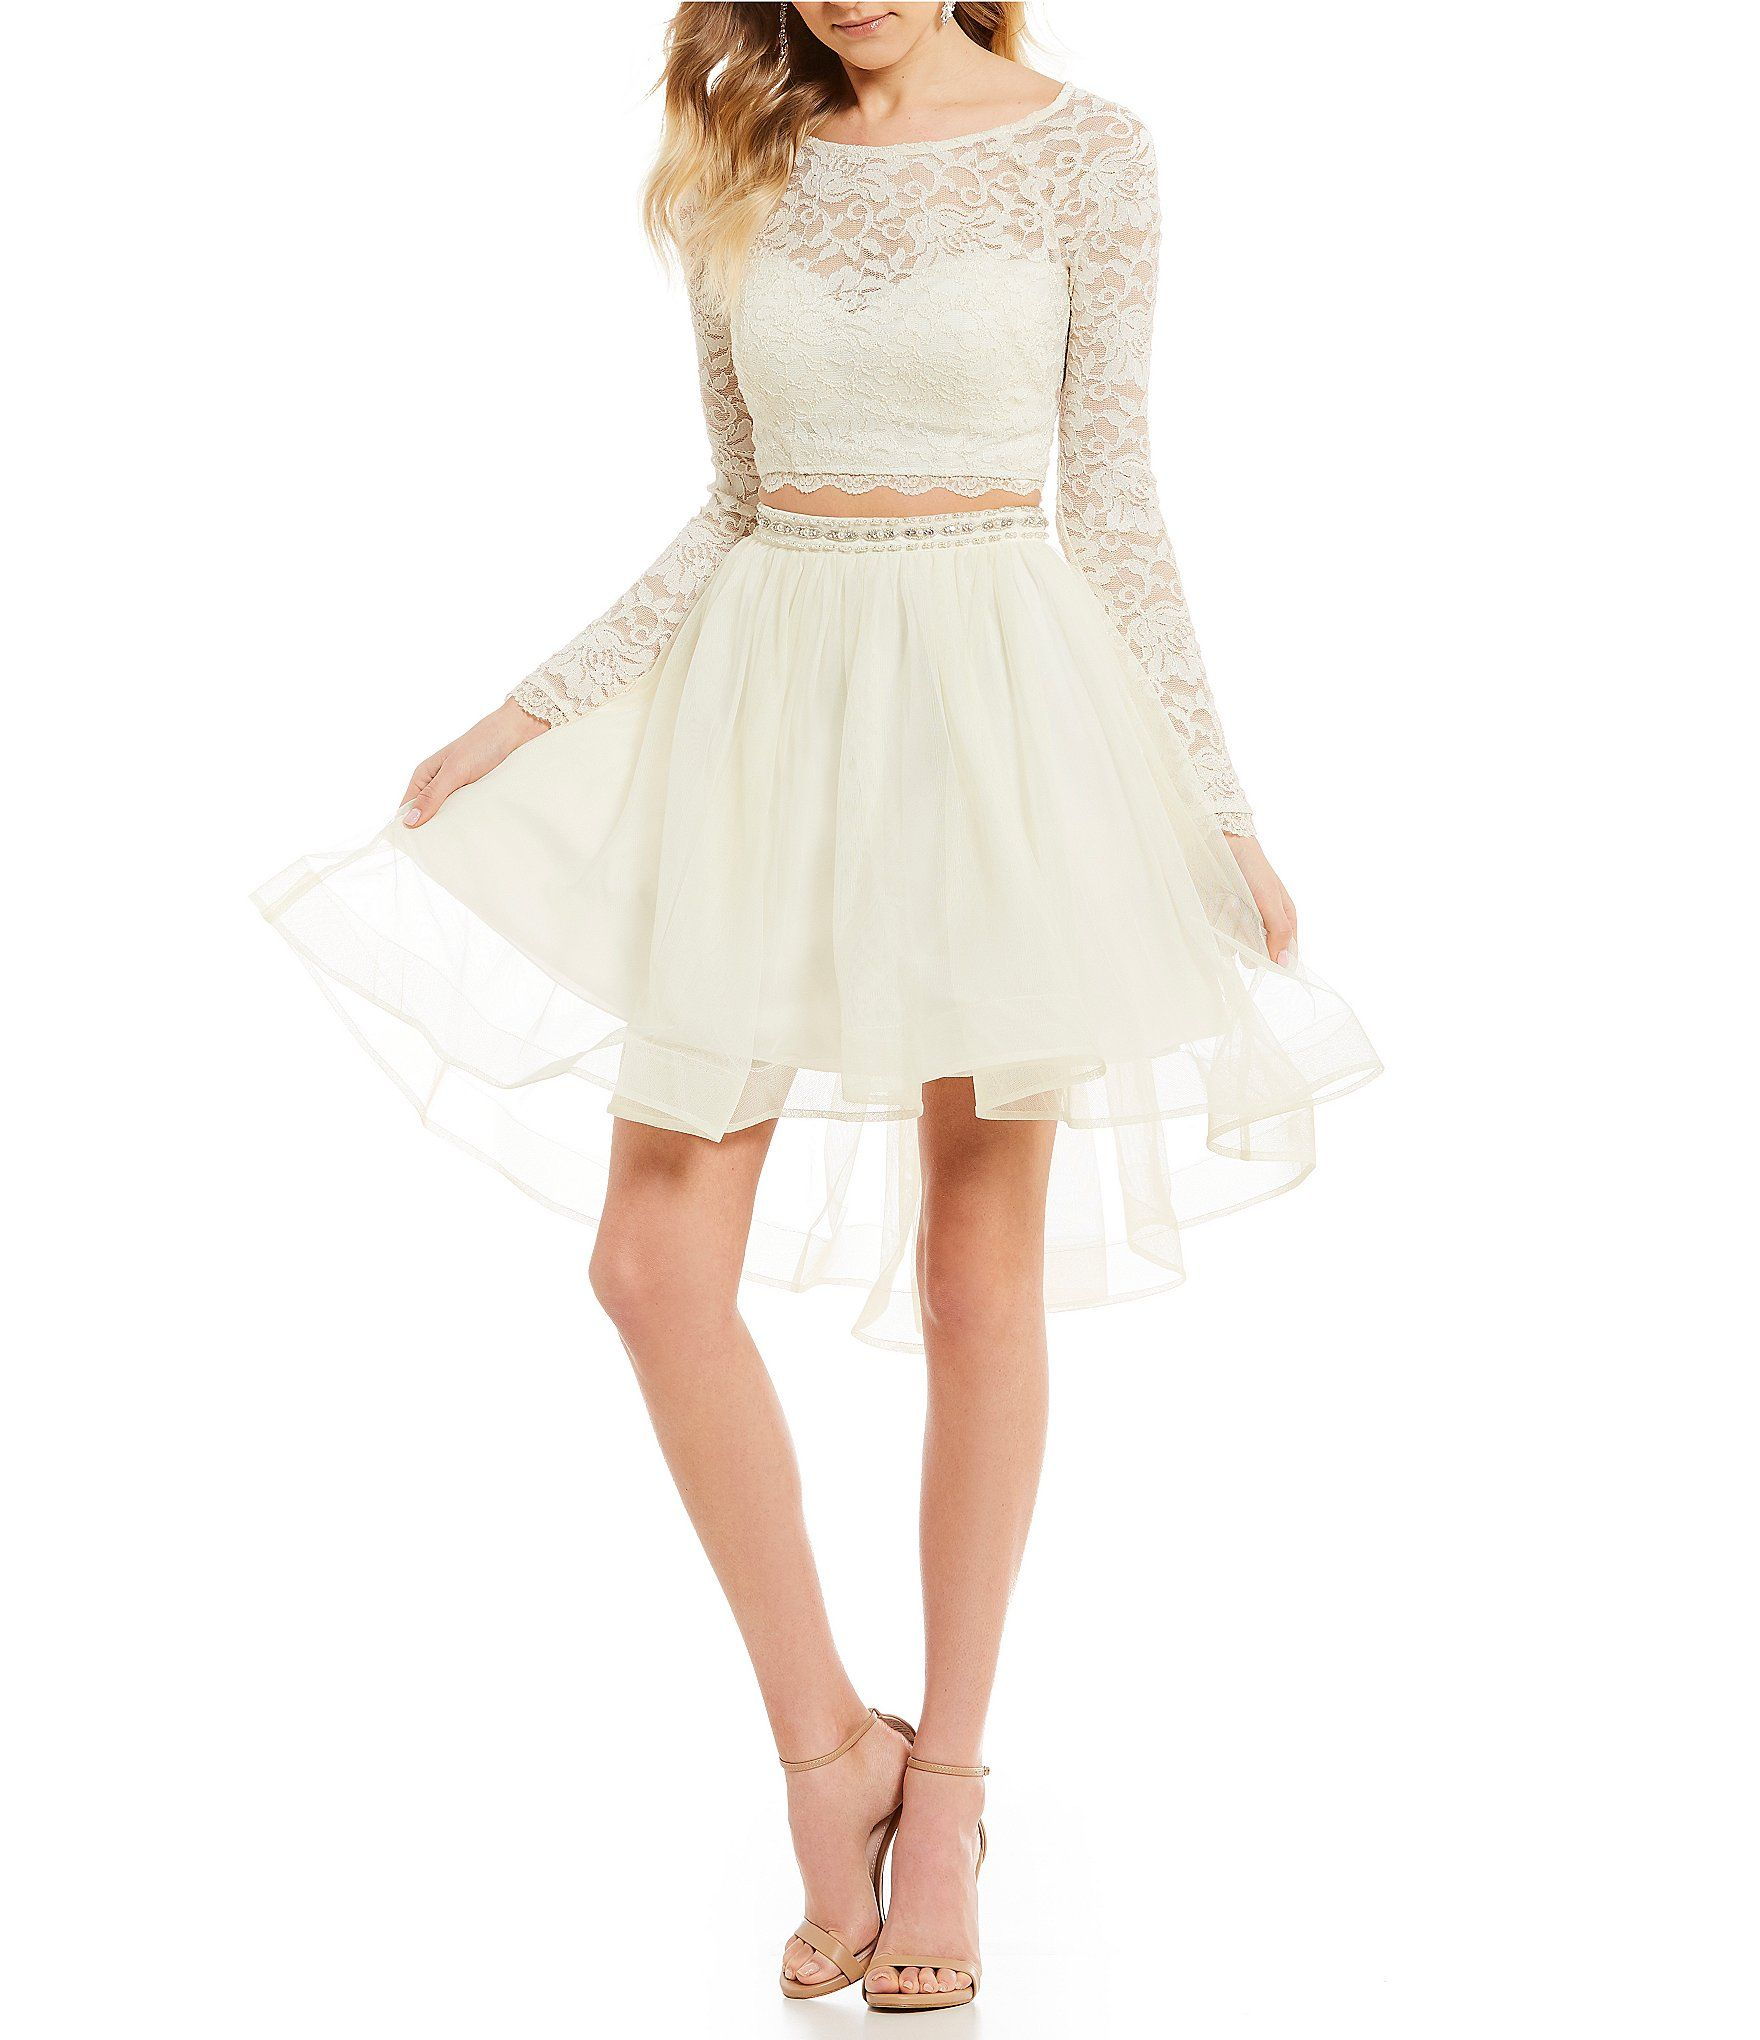 Sequin Hearts Long Sleeve Glitter Lace Top Two,Piece Dress